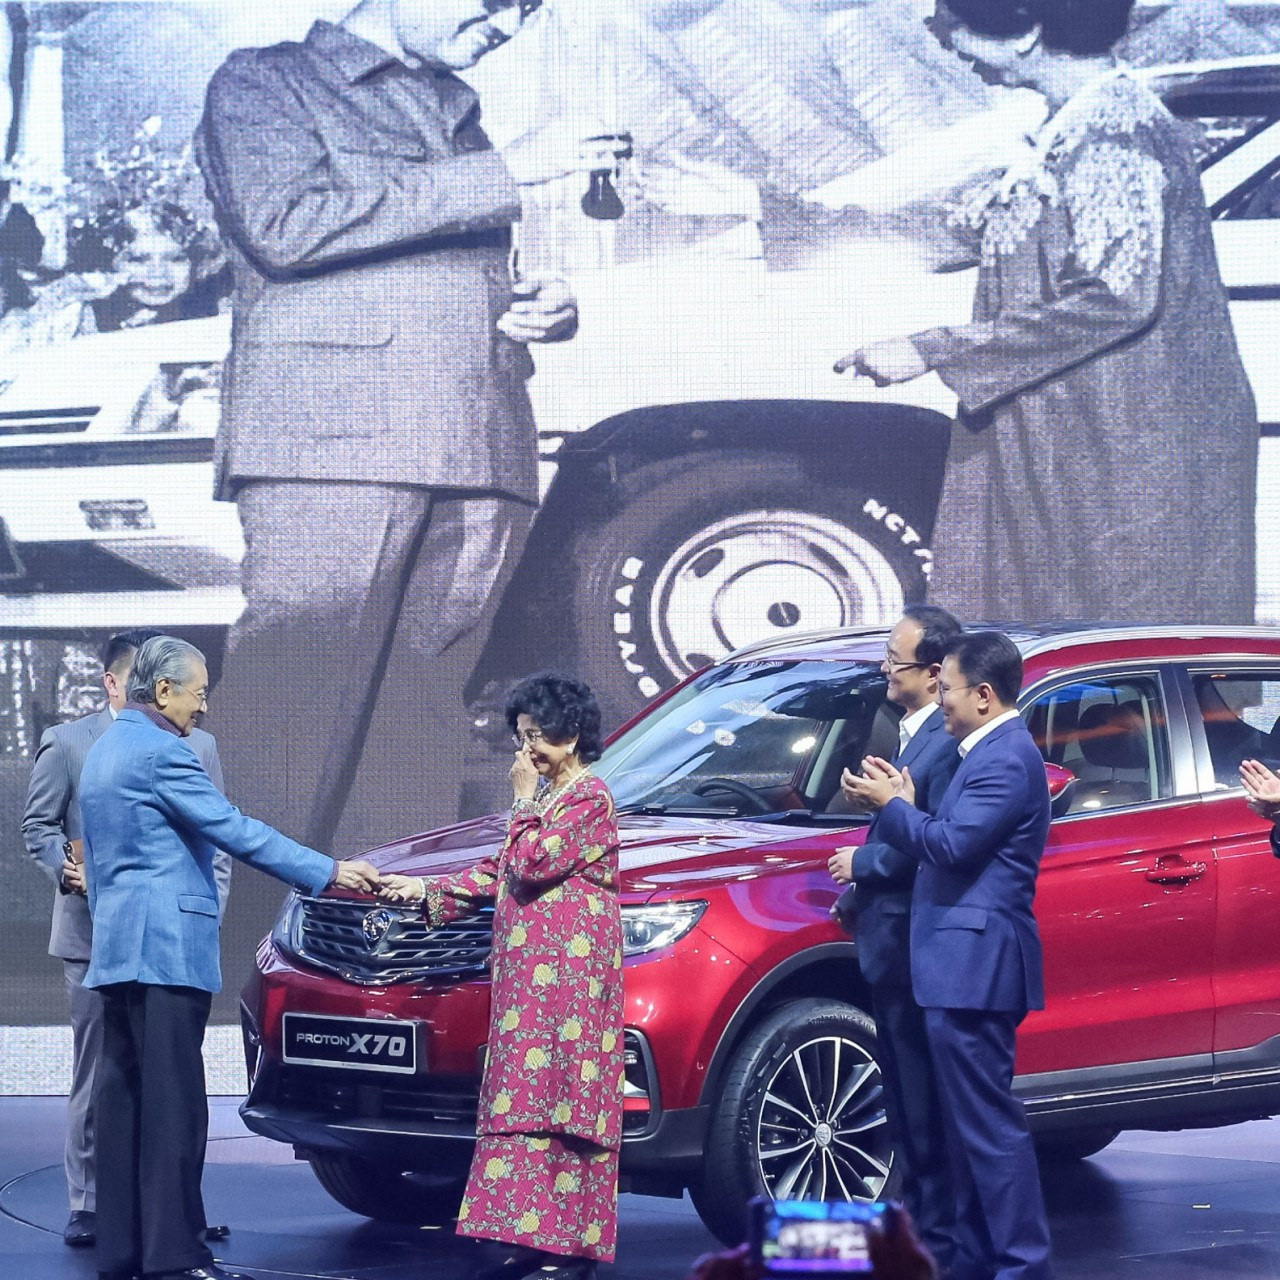 Proton X70: an SUV, or a sign China-Malaysia ties are